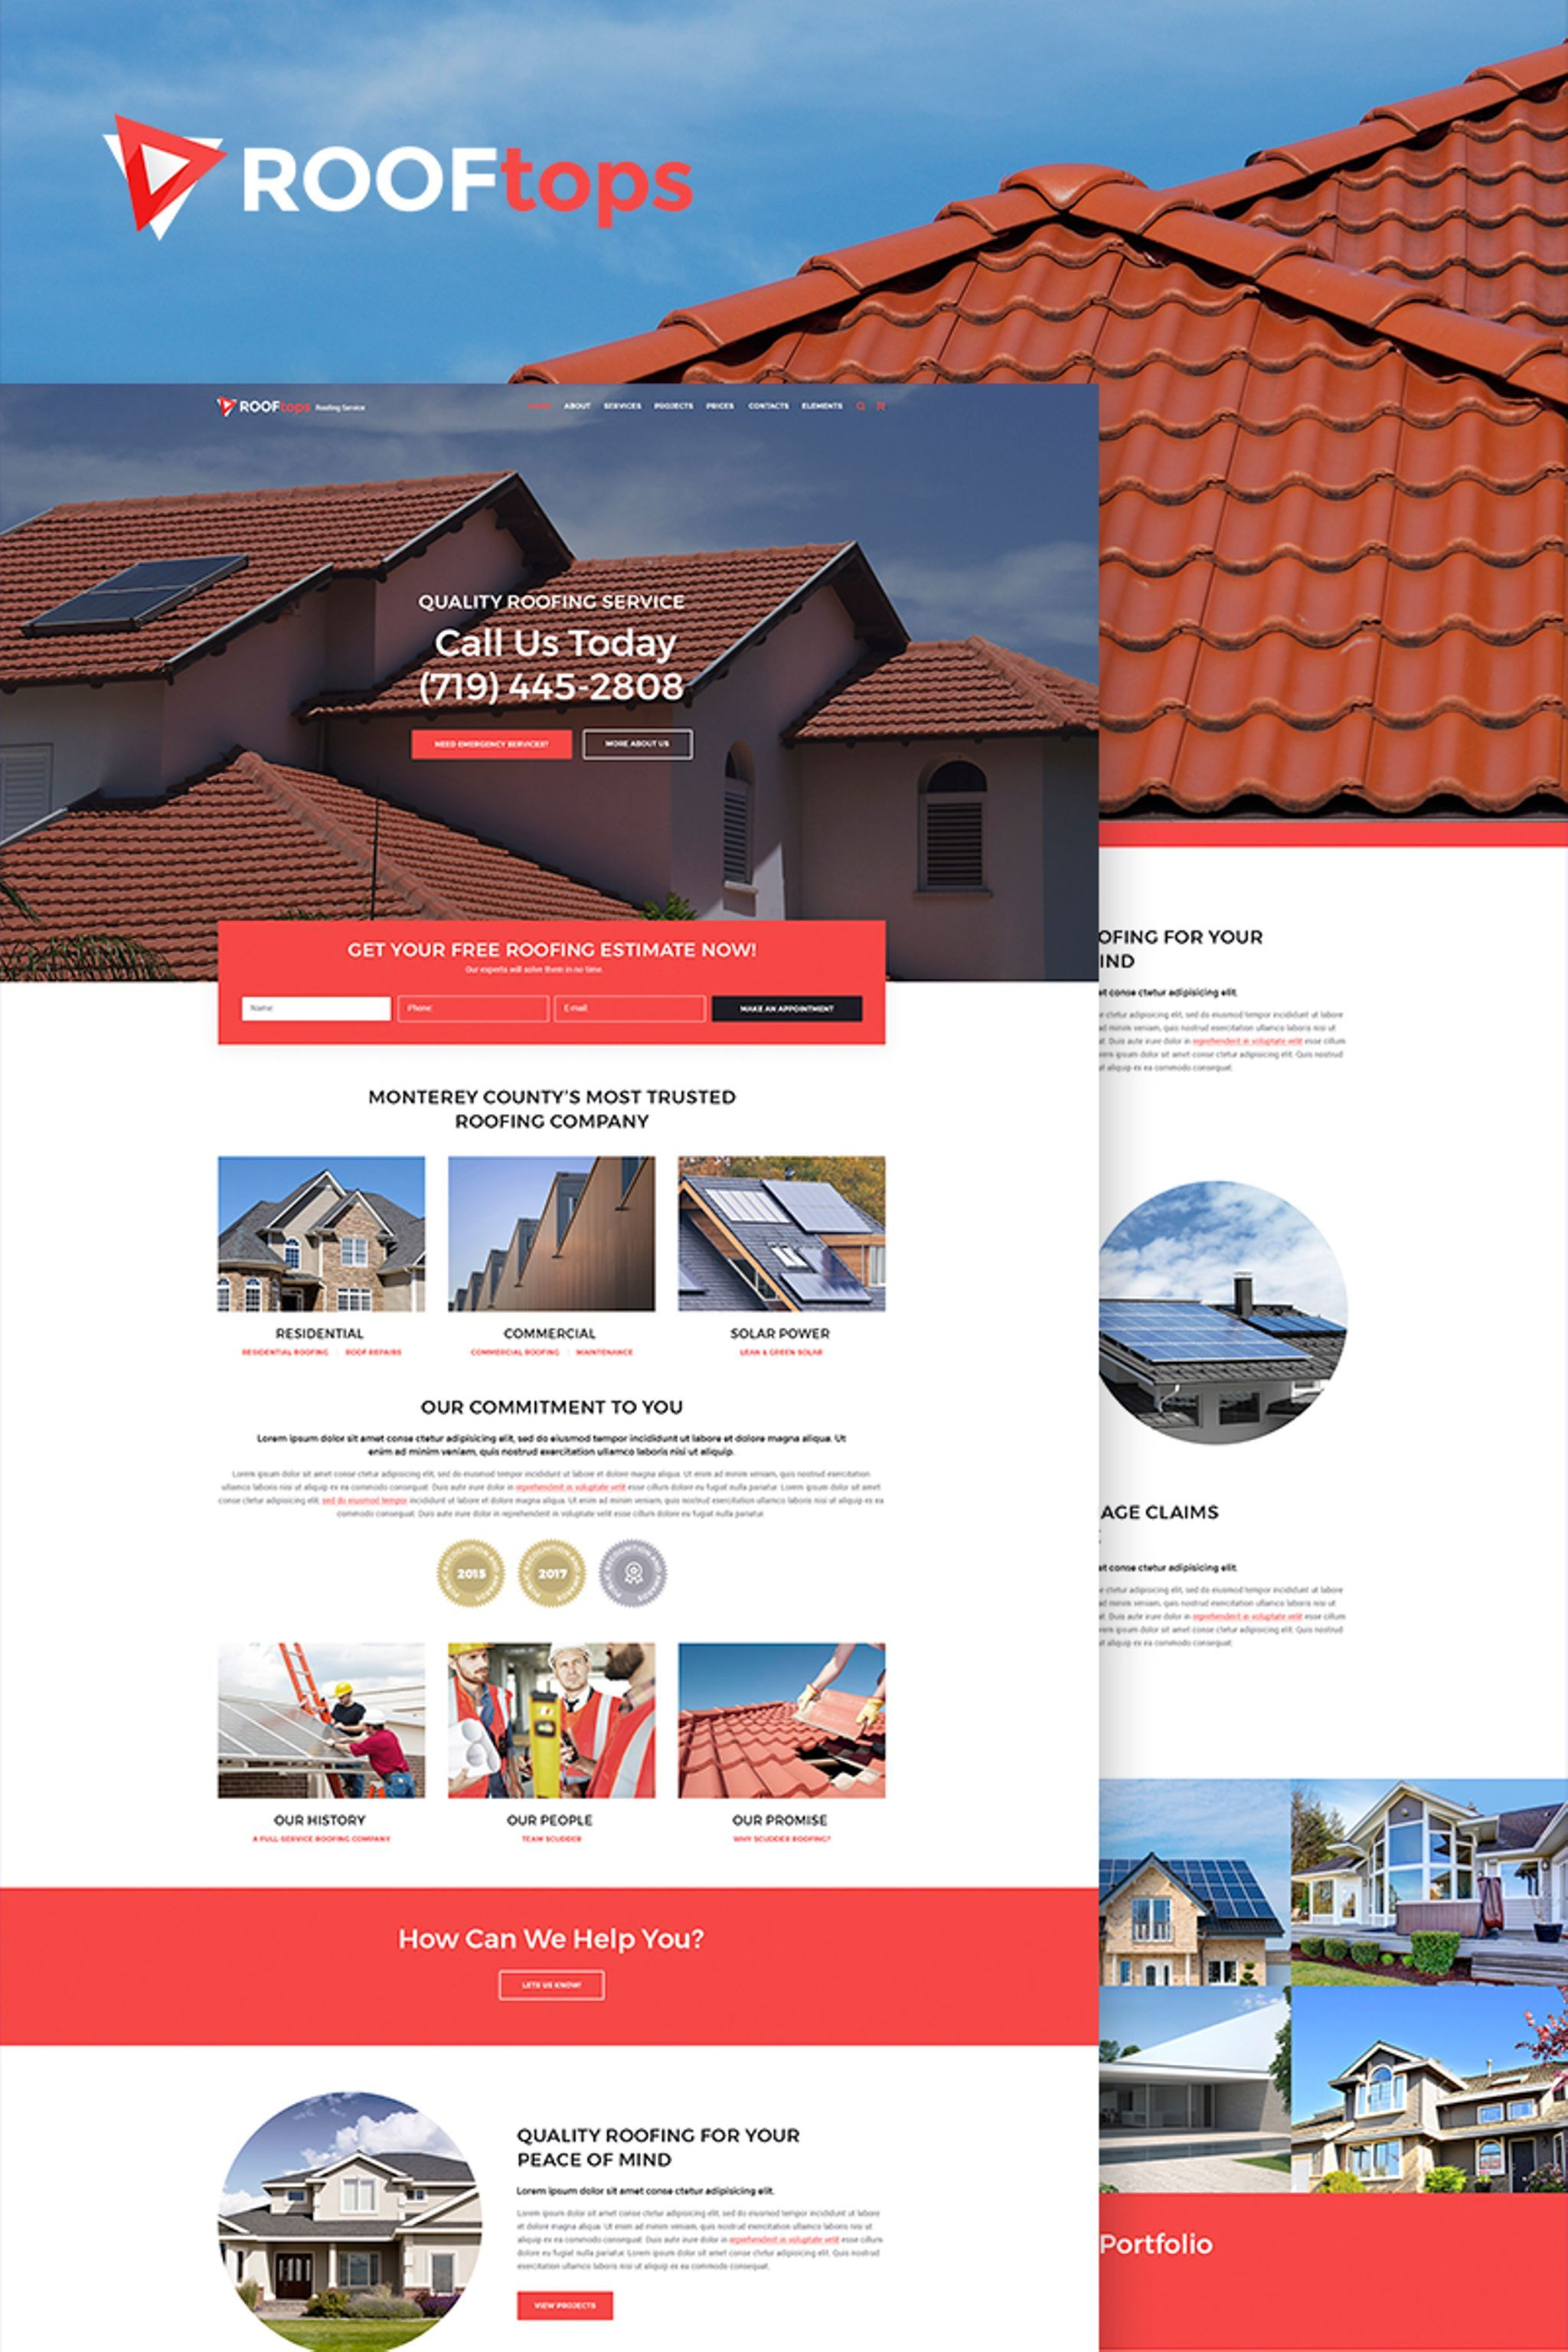 rooftops roofing service wordpress theme wordpress roofing rooftops service corporate website